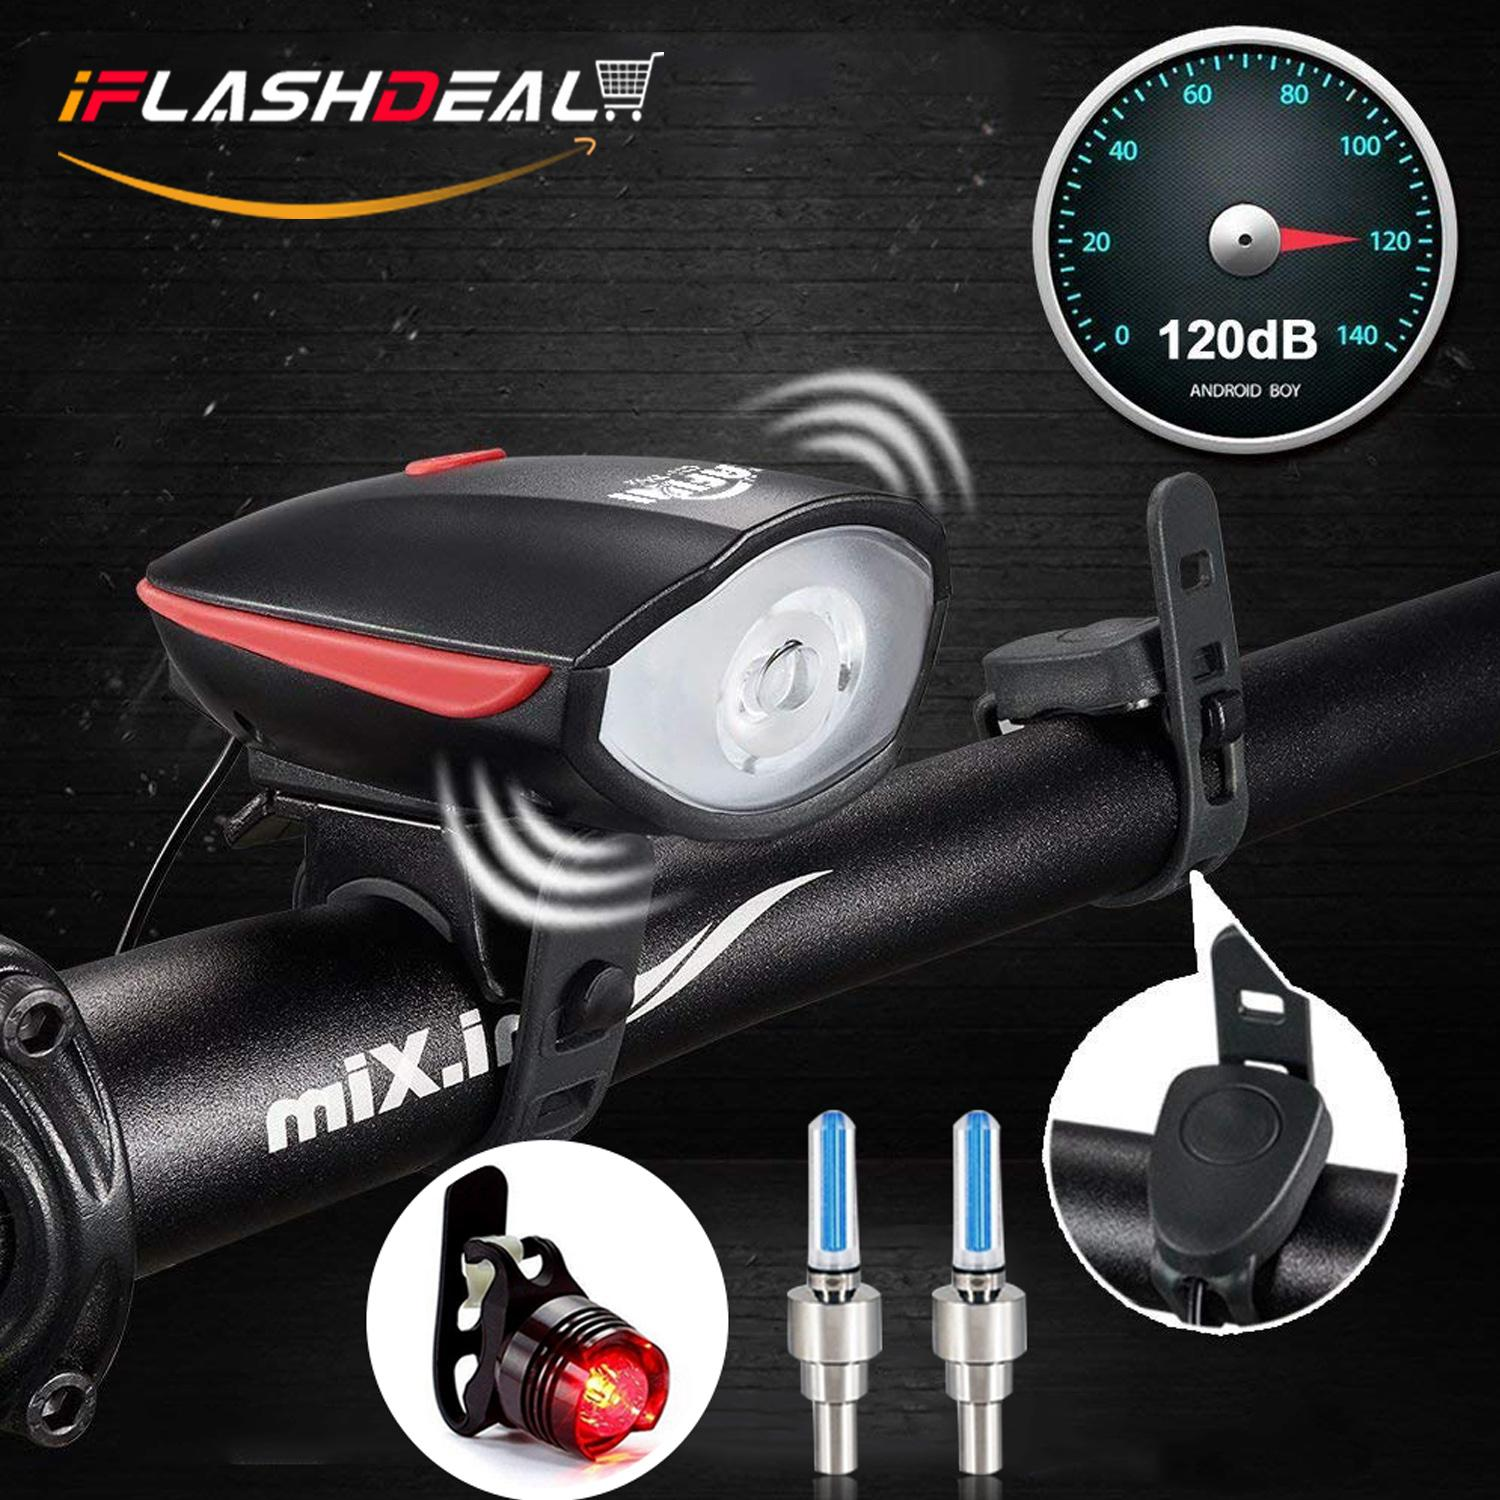 Bike Lights For Sale Cycling Online Brands Prices Car Headlight Alarm Iflashdeal Usb Rechargeable Light Set Bicycle Tail Led Front And Back Rear Horn